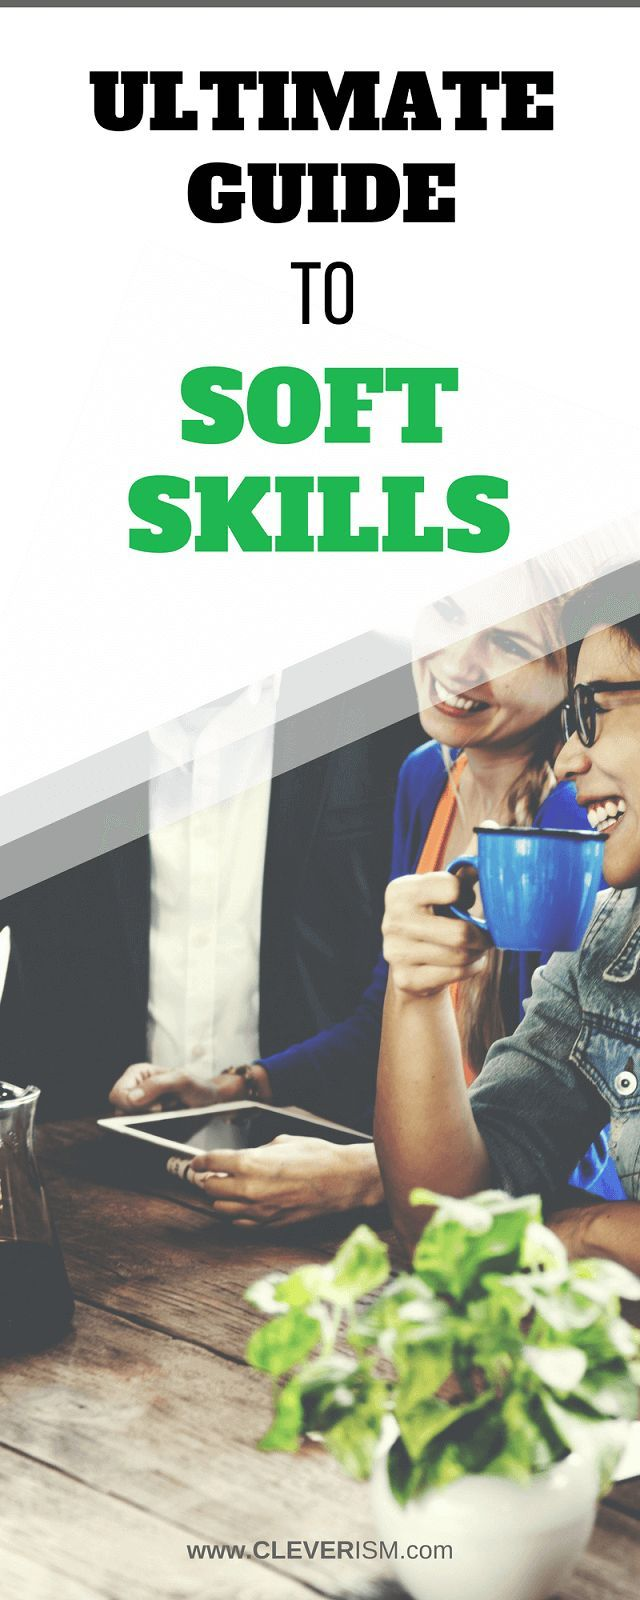 Ultimate Guide to Soft Skills (plus how to develop them) – Linda Koster